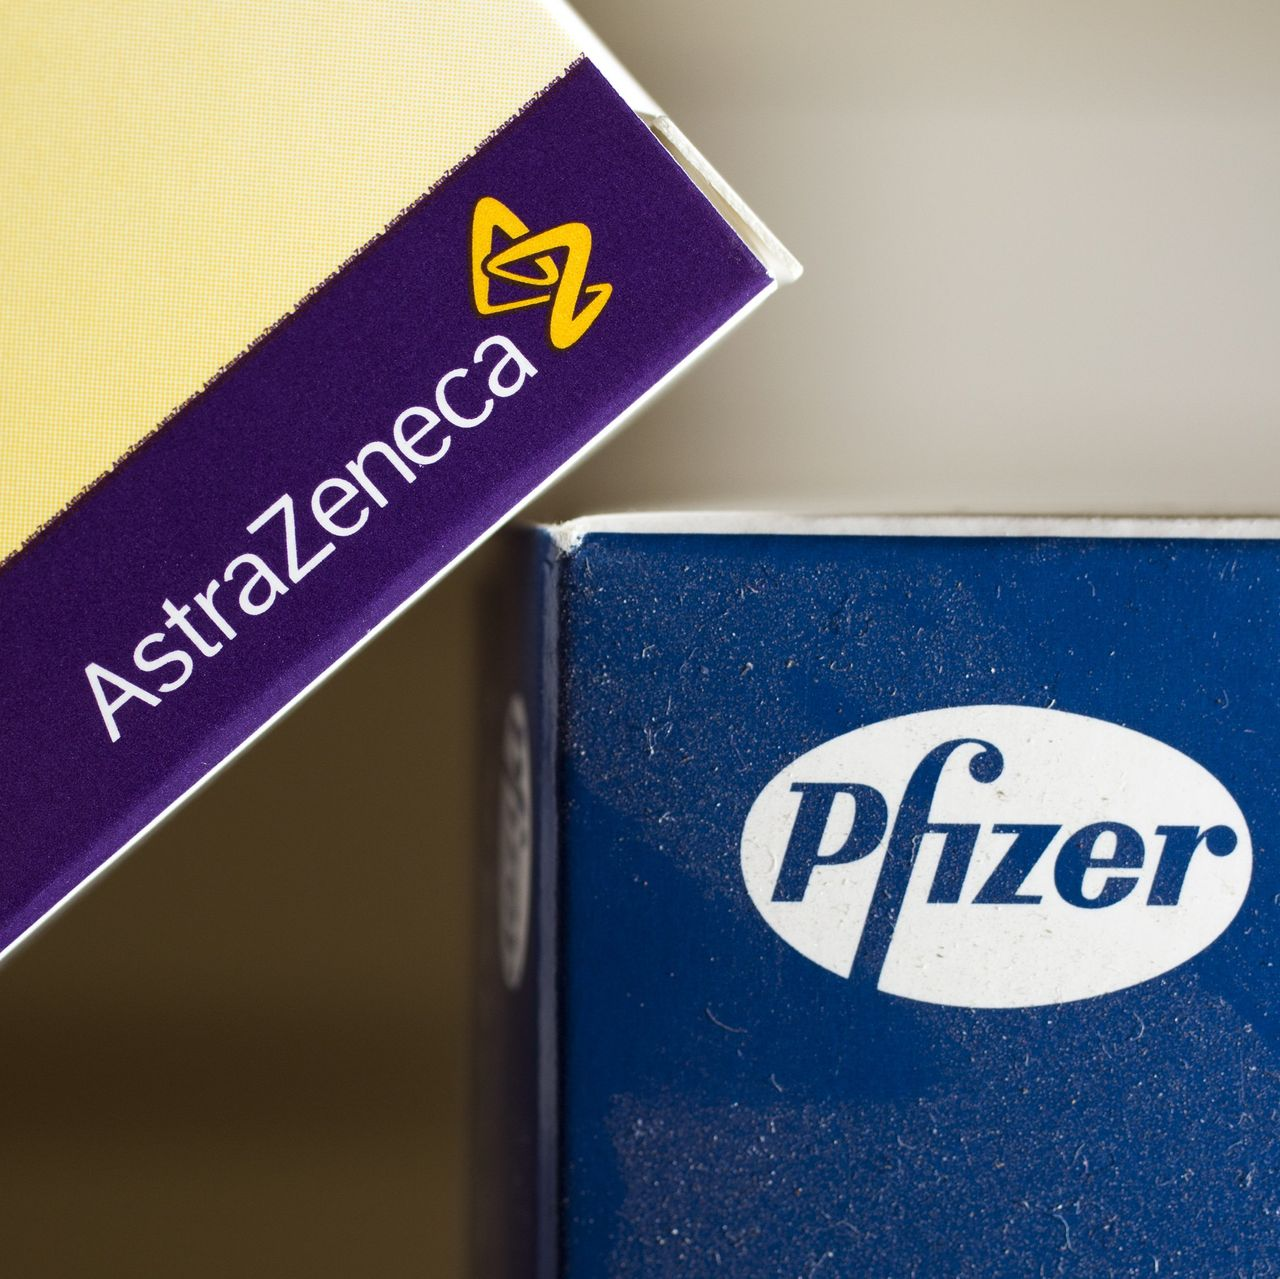 U K Regulator Is Accelerating Reviews Of Covid 19 Vaccines From Pfizer And Astrazeneca According To A Report Marketwatch